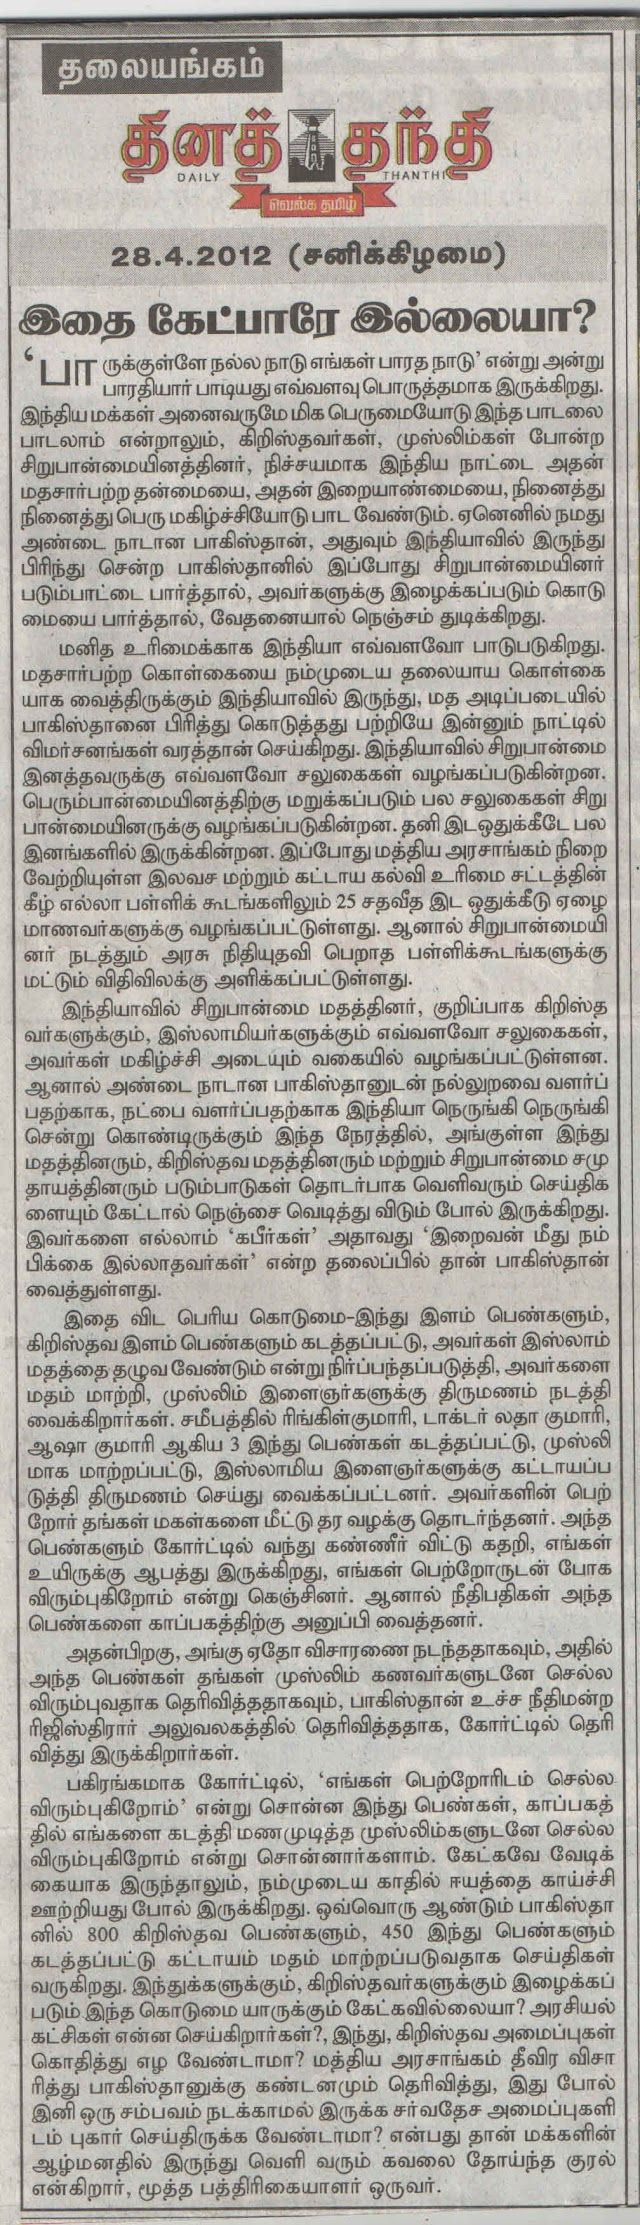 Article published in Daily Thanthi